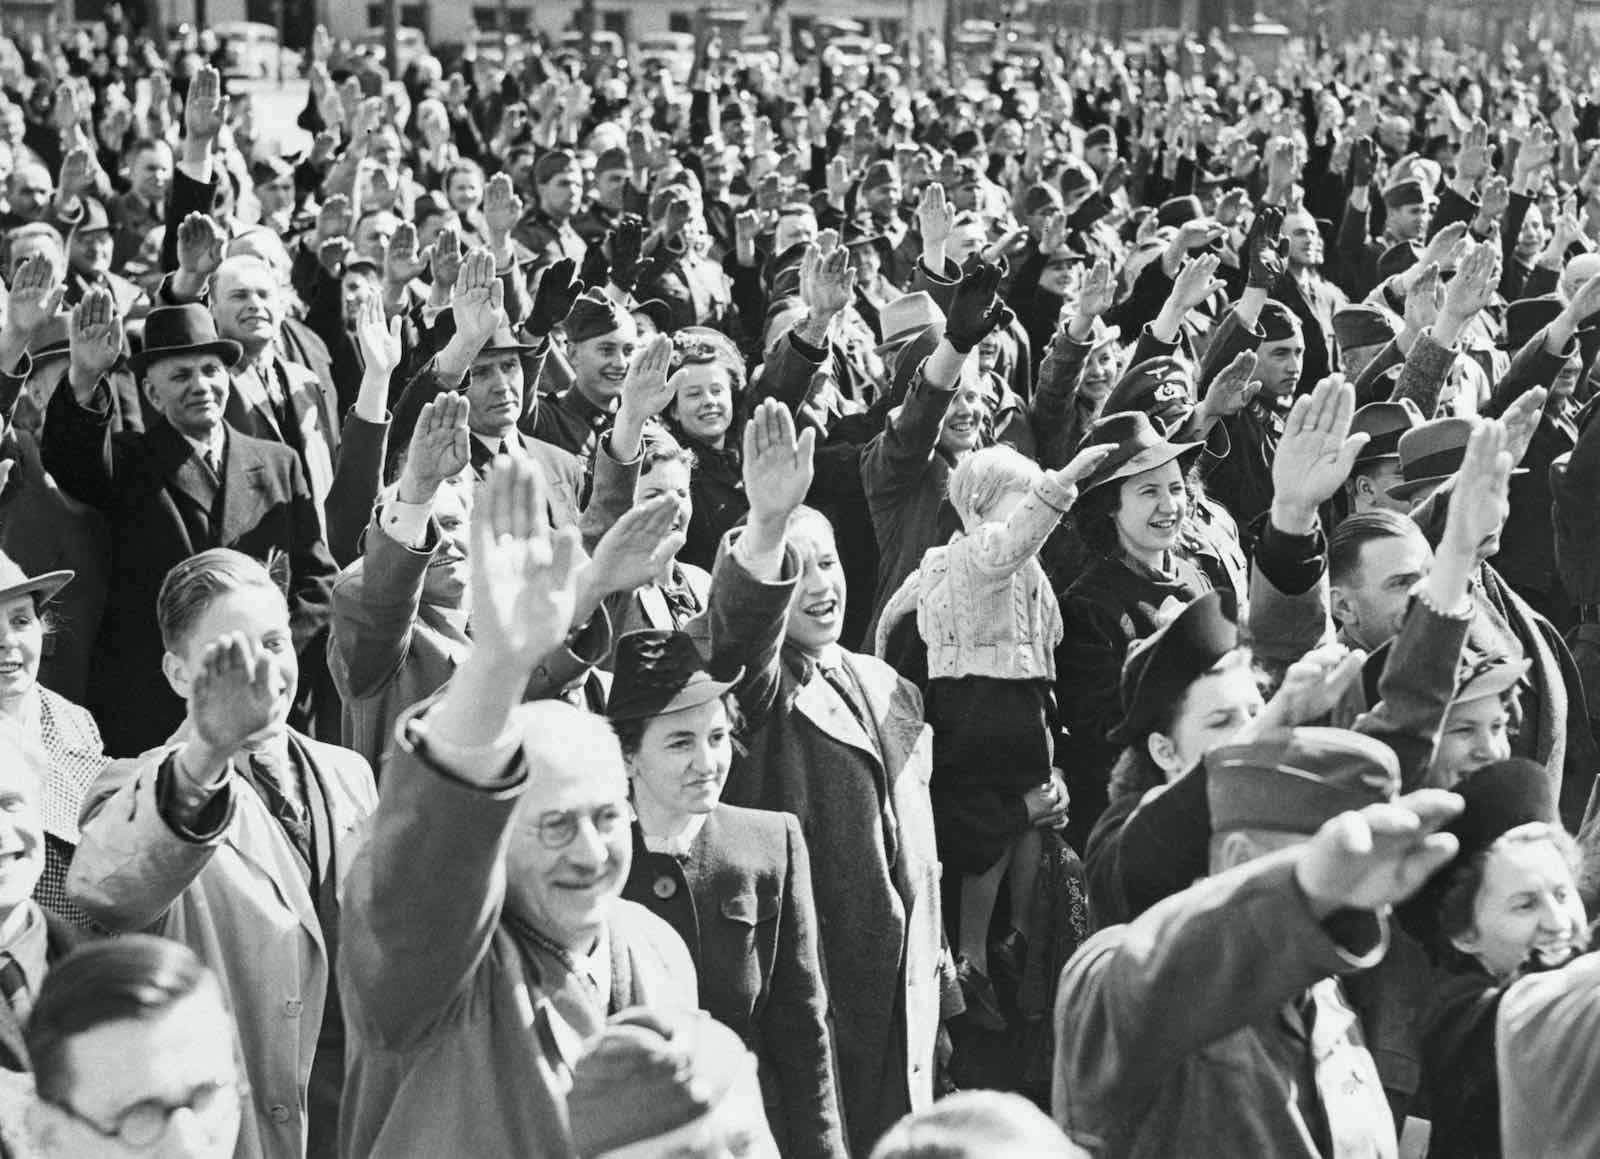 Crowds cheer Adolf Hitler on his 51st birthday in 1940 outside the Reich Chancellory, Berlin (Getty Images)